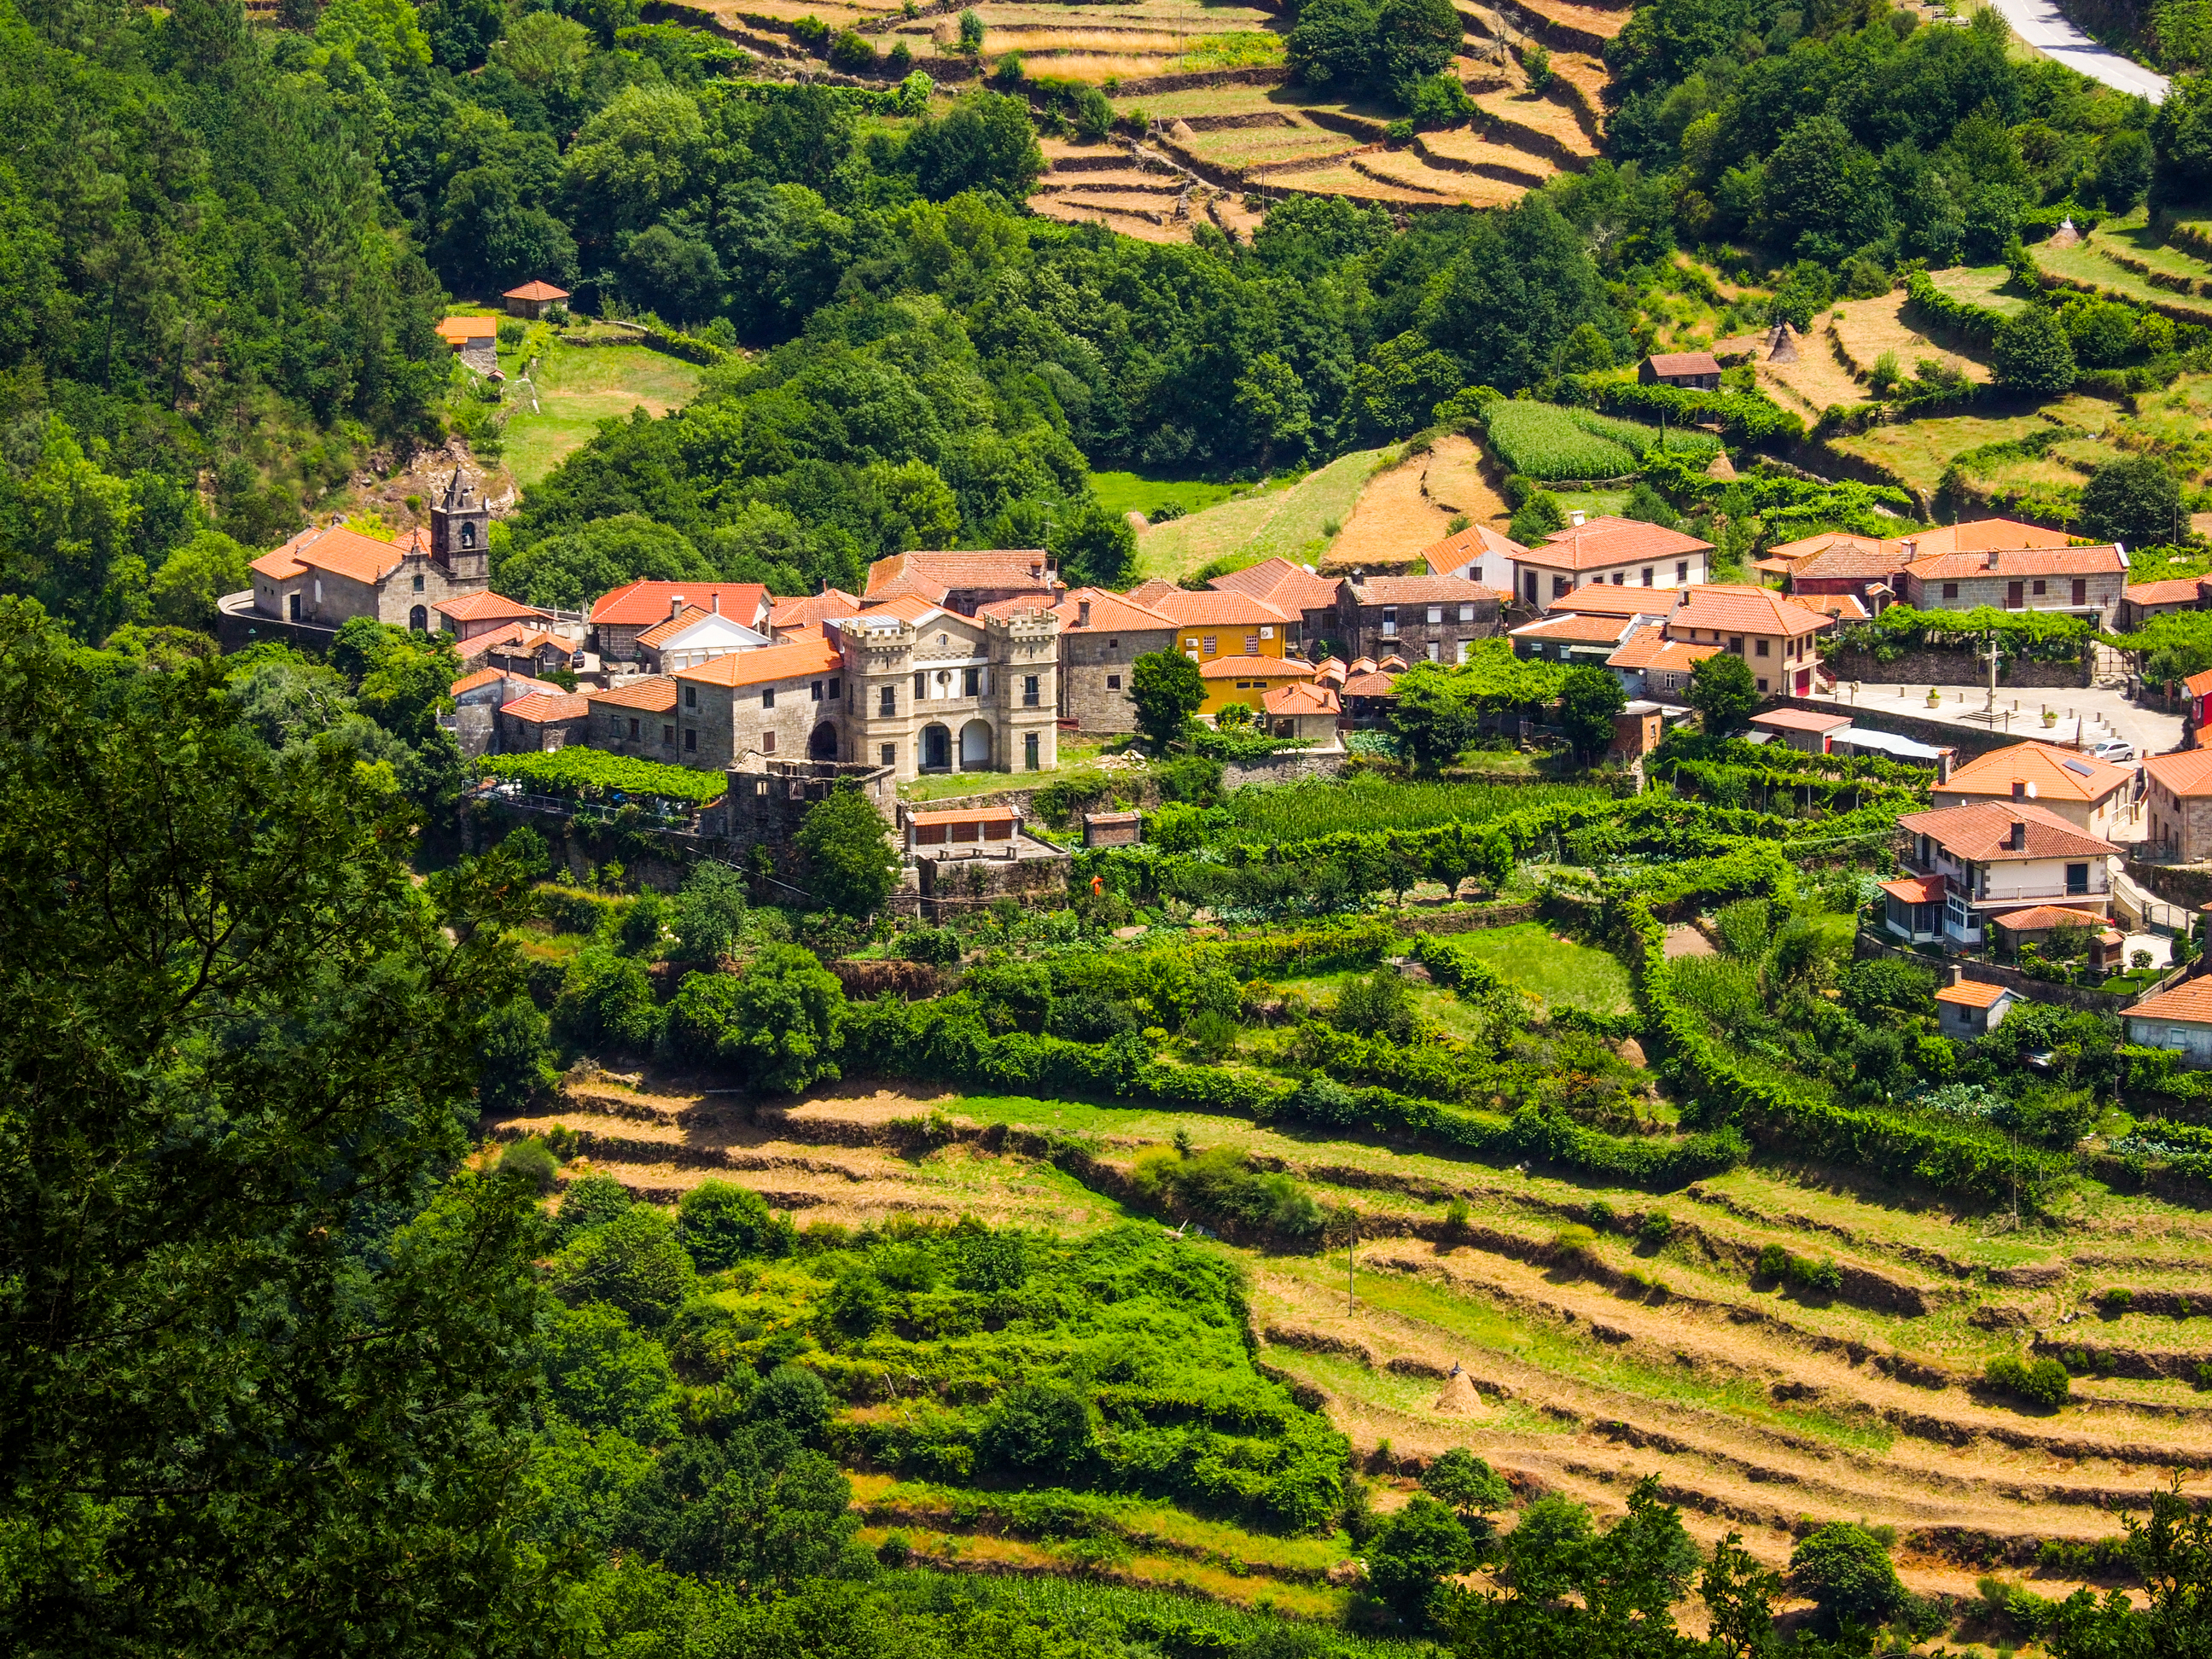 """Sistelo, also known as """"little Portuguese Tibet"""", is one of the highlights of northern Portugal."""